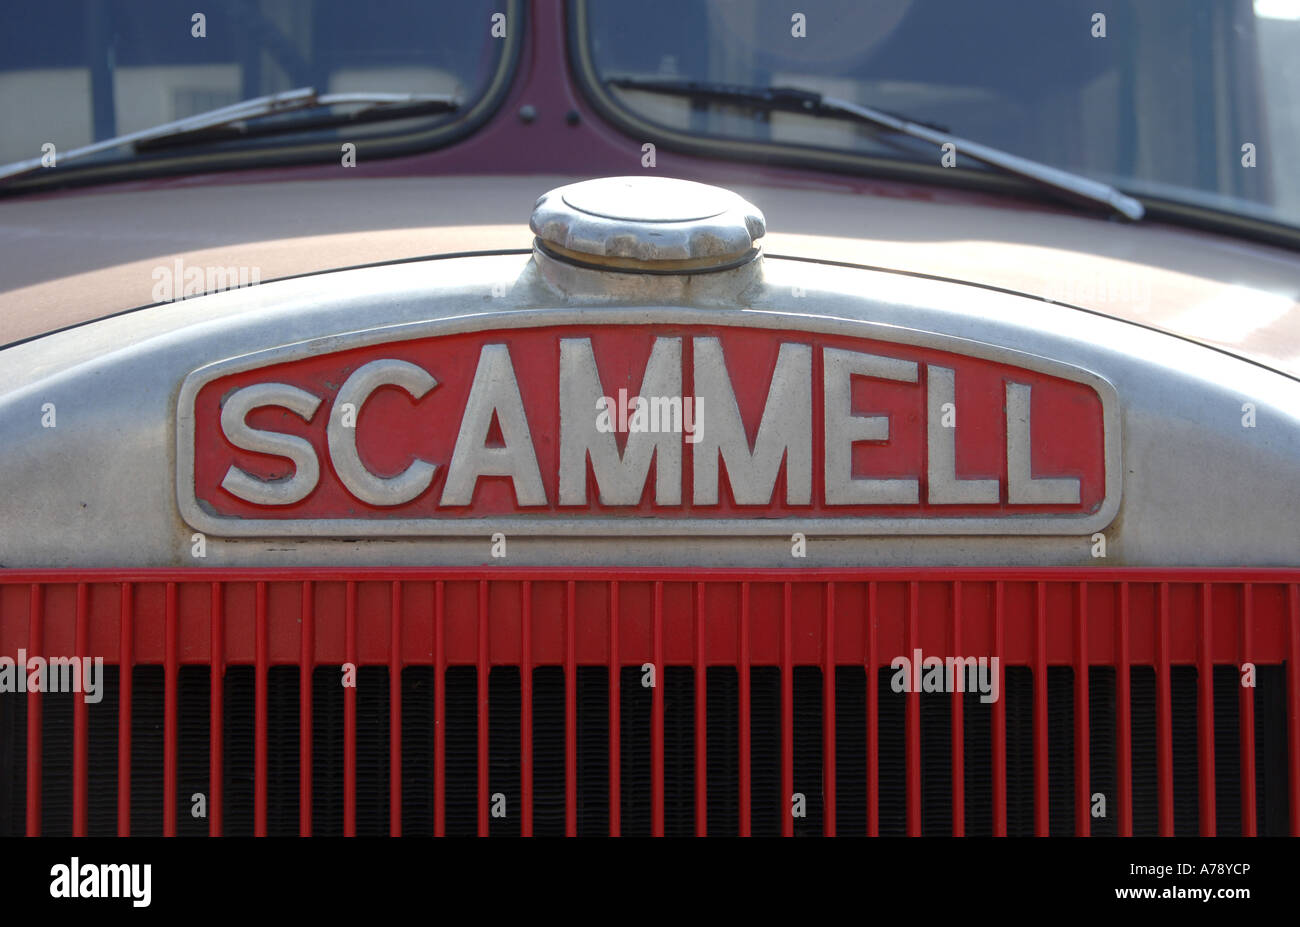 Scammell truck name badge Stock Photo